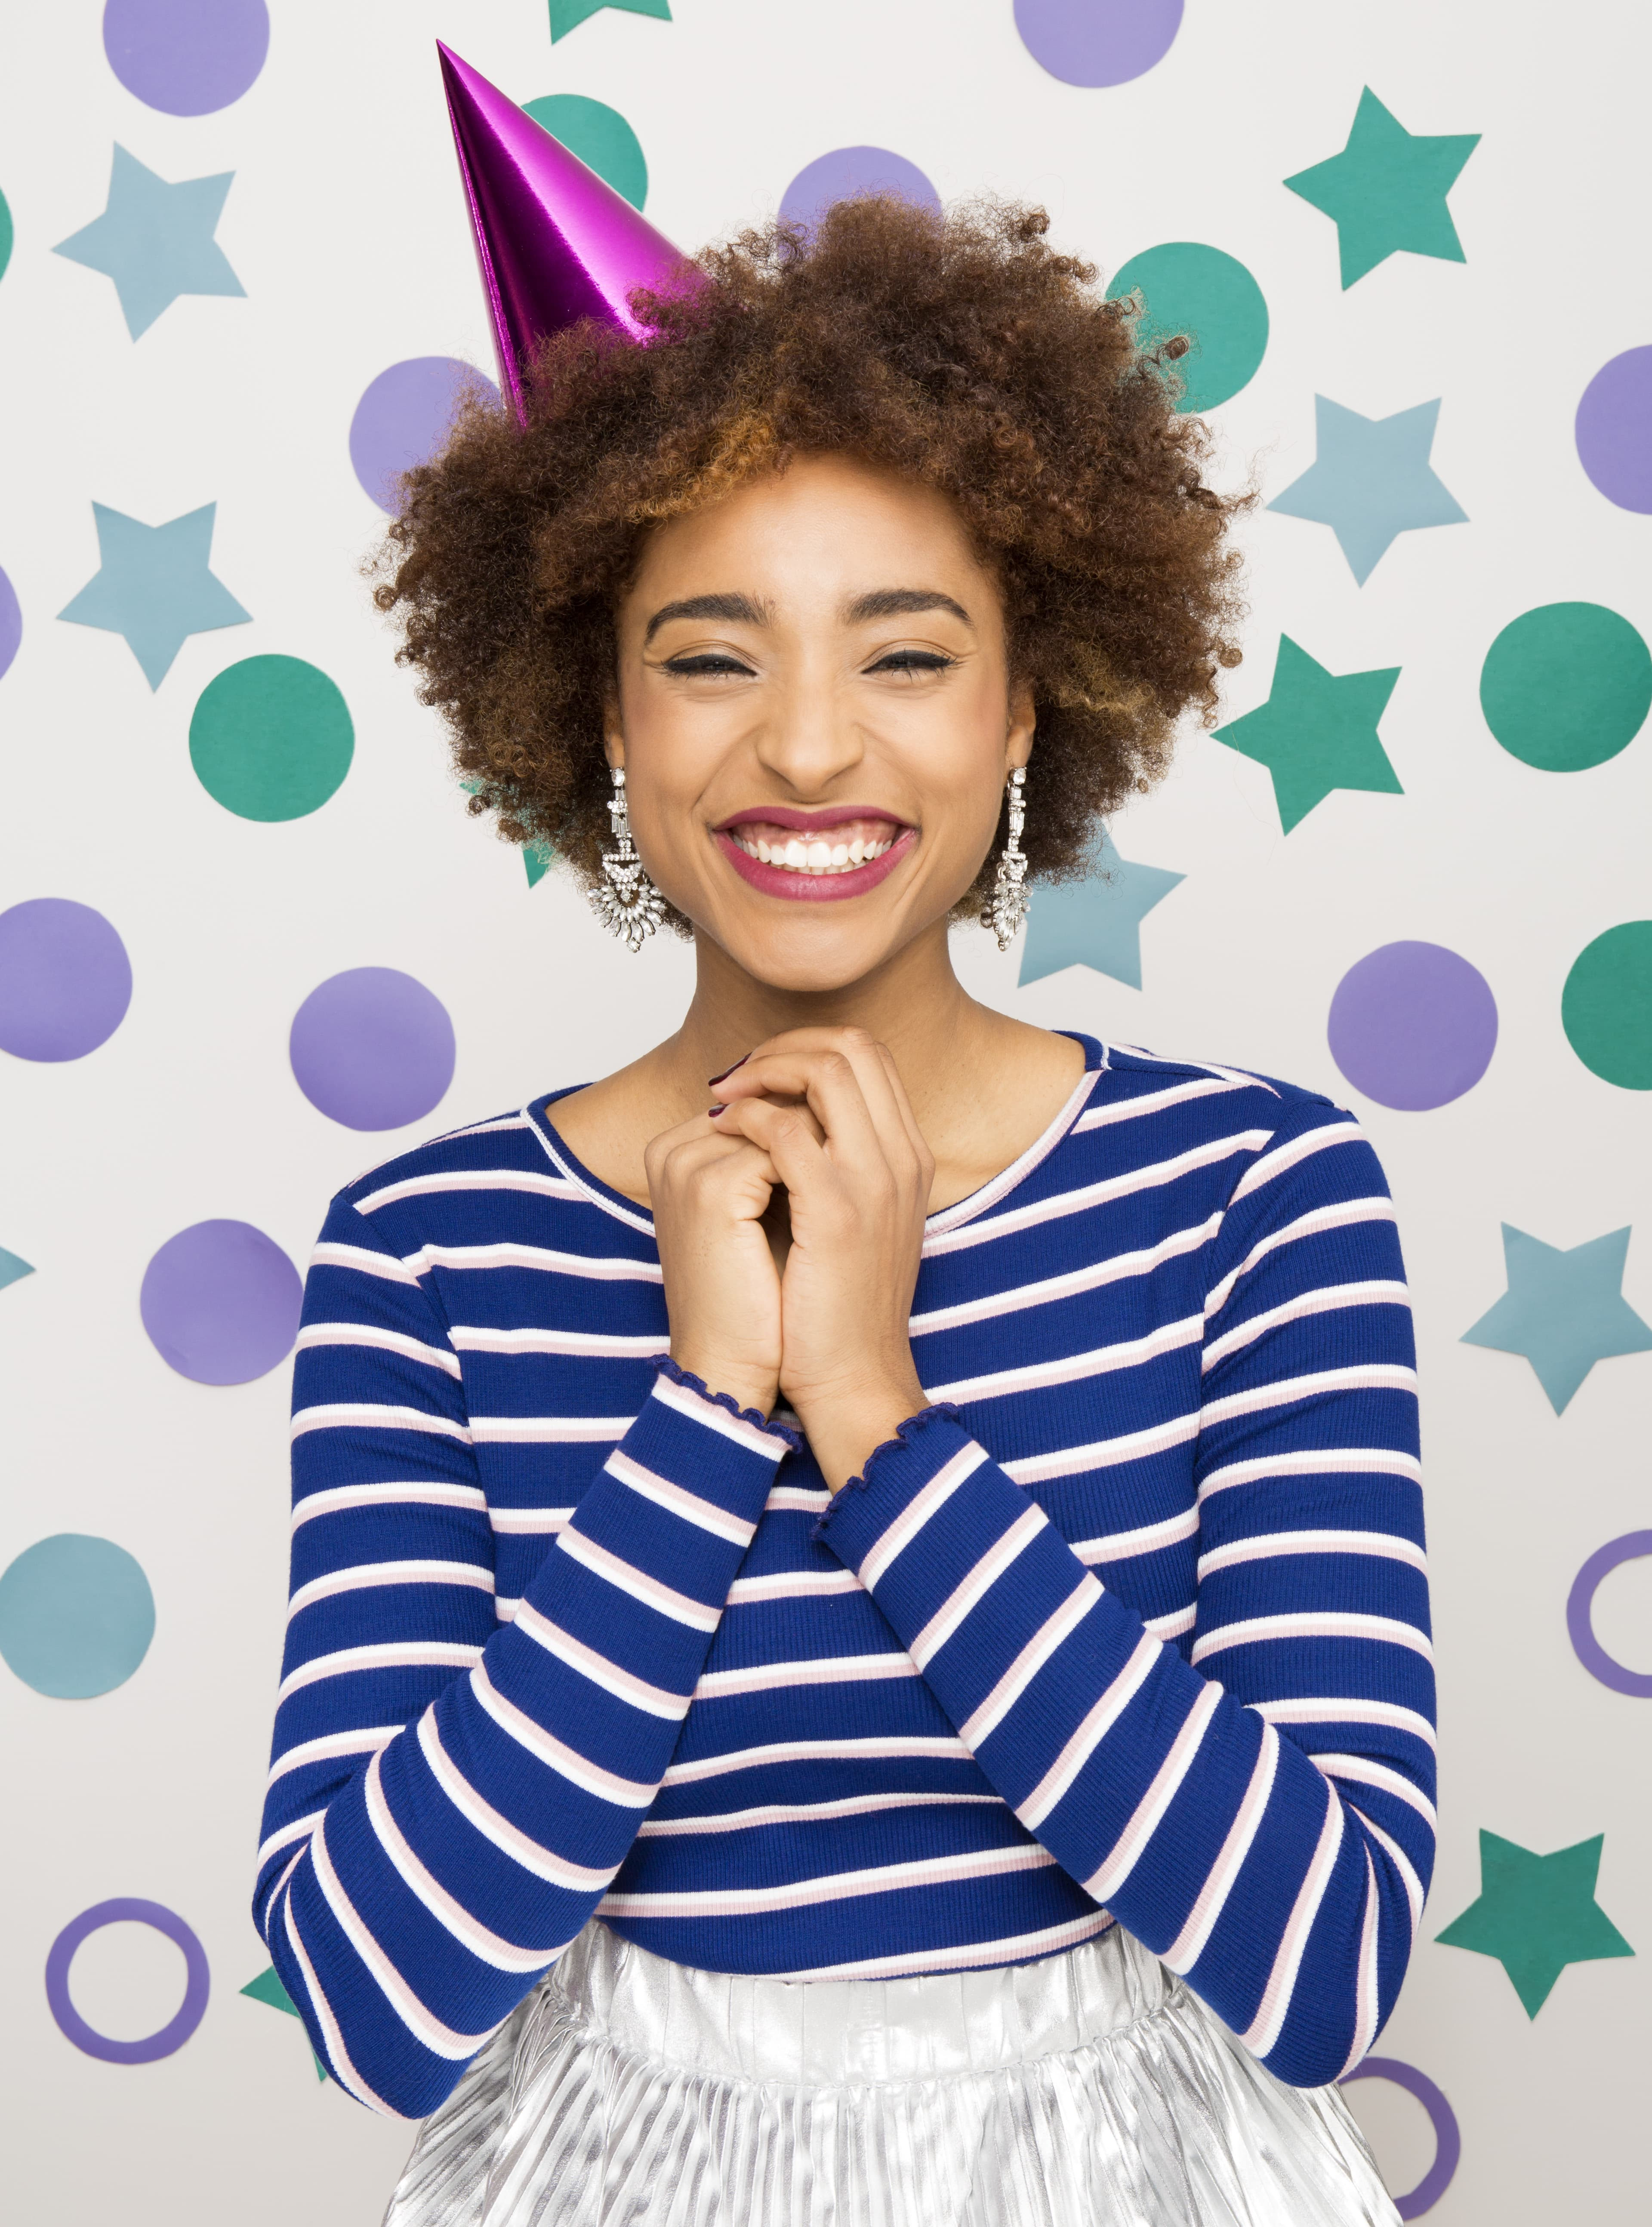 A young black model with a stripey blue and white top with a TWA and party hair